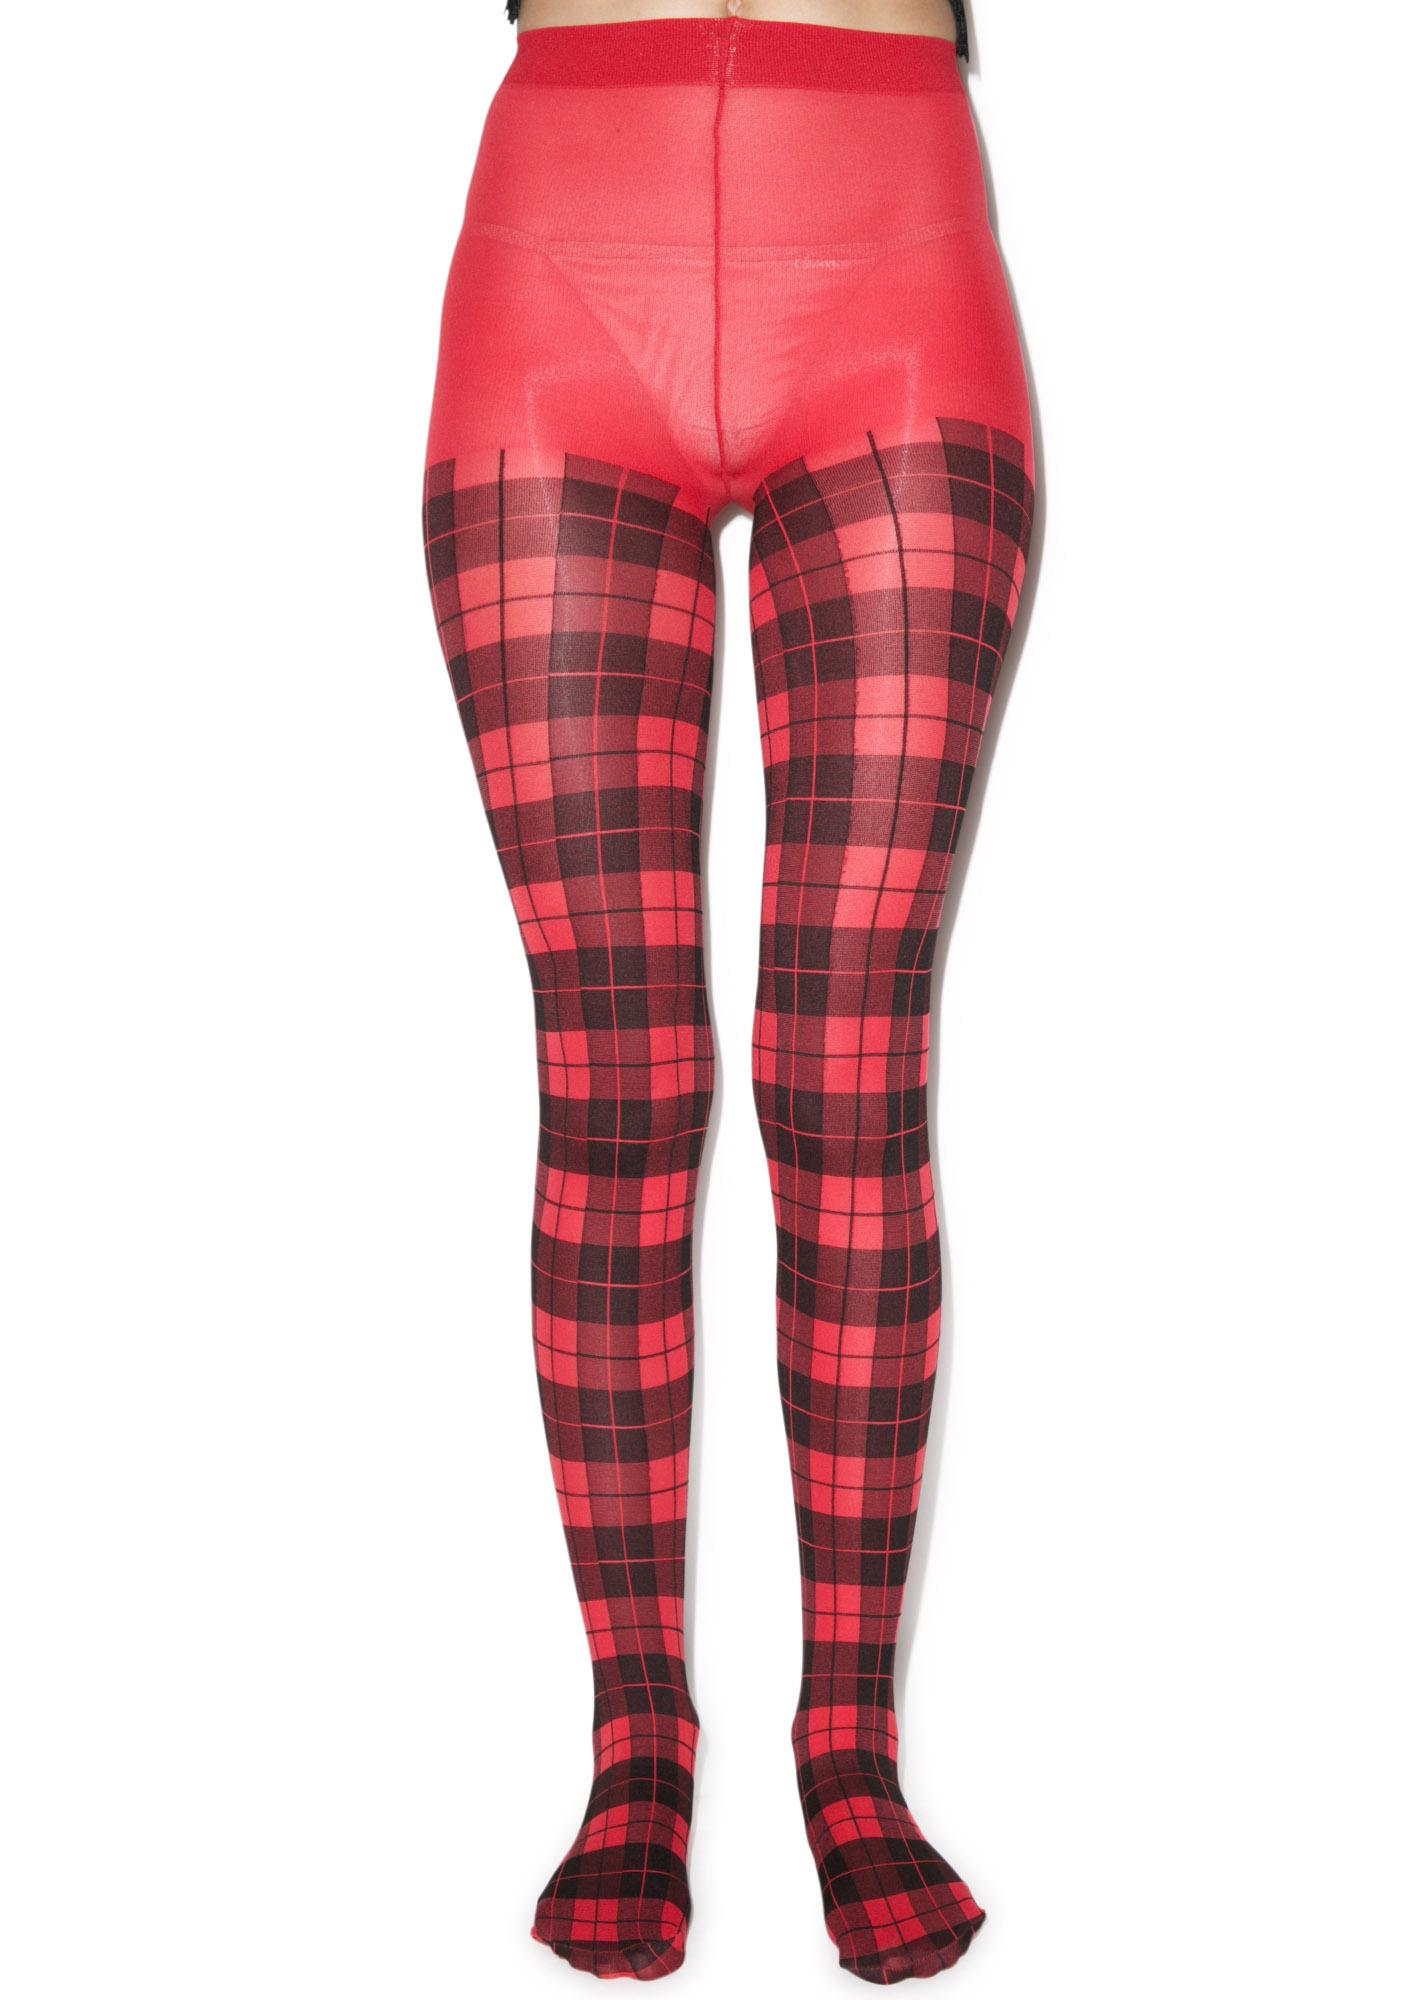 Pretty Polly Tartan Tights